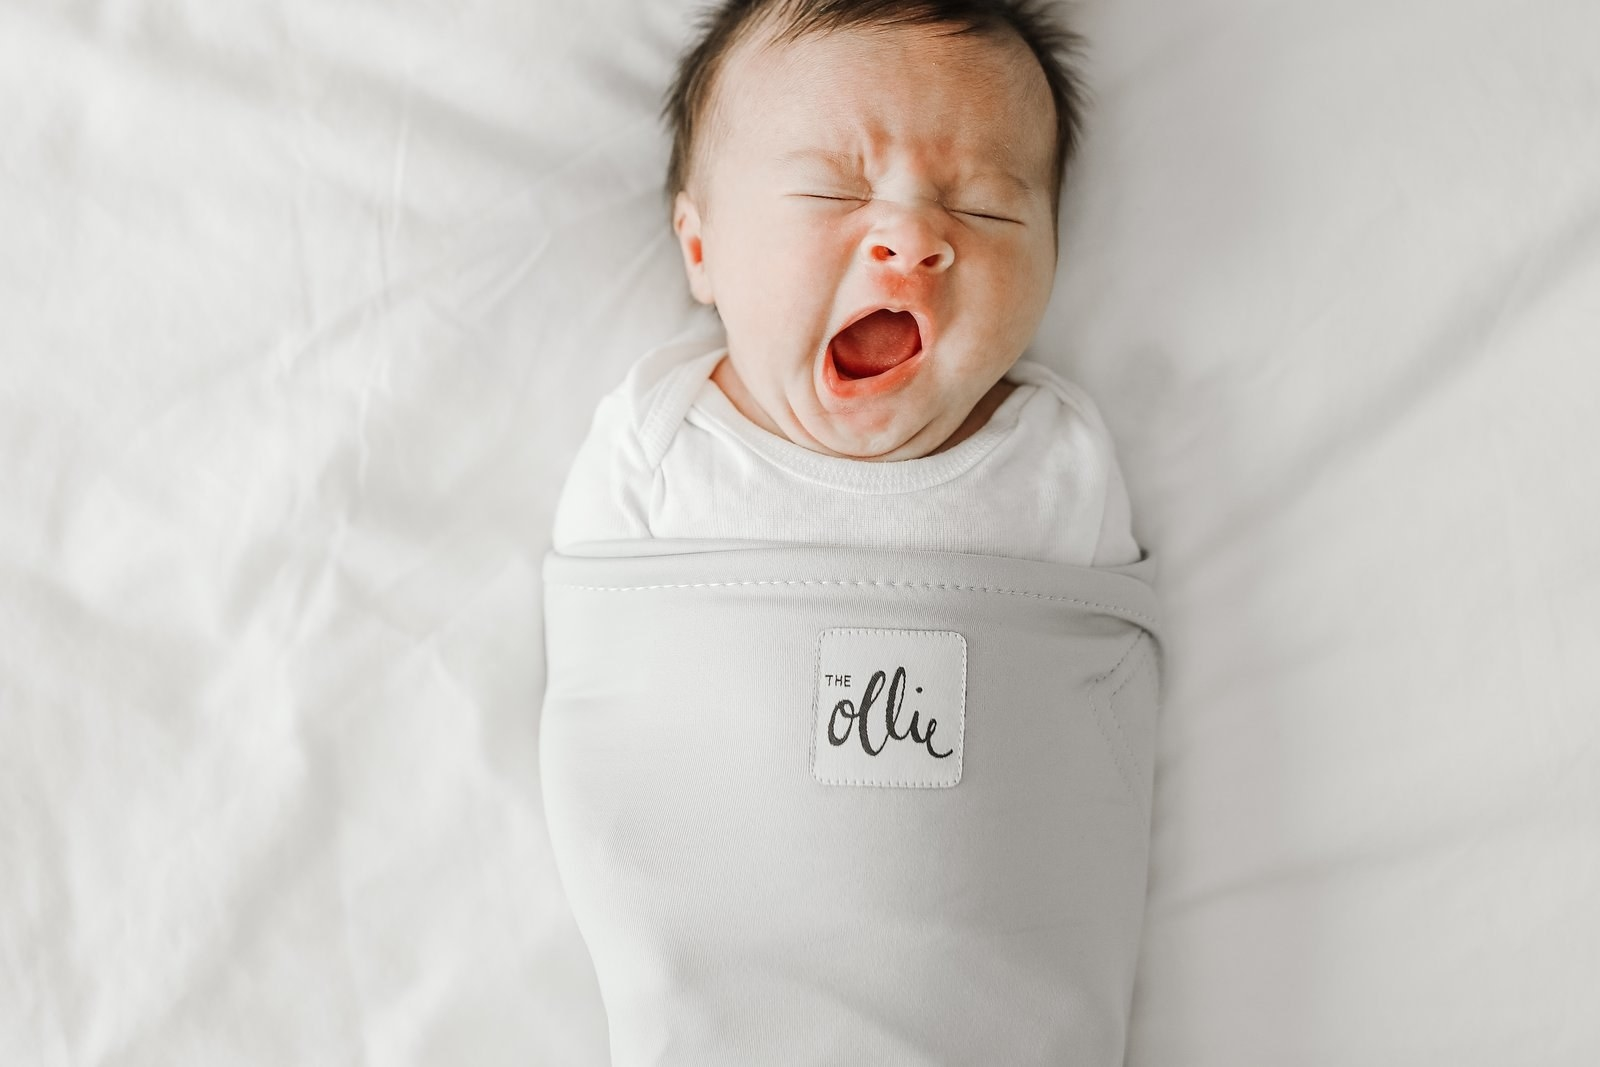 A baby in the swaddle.